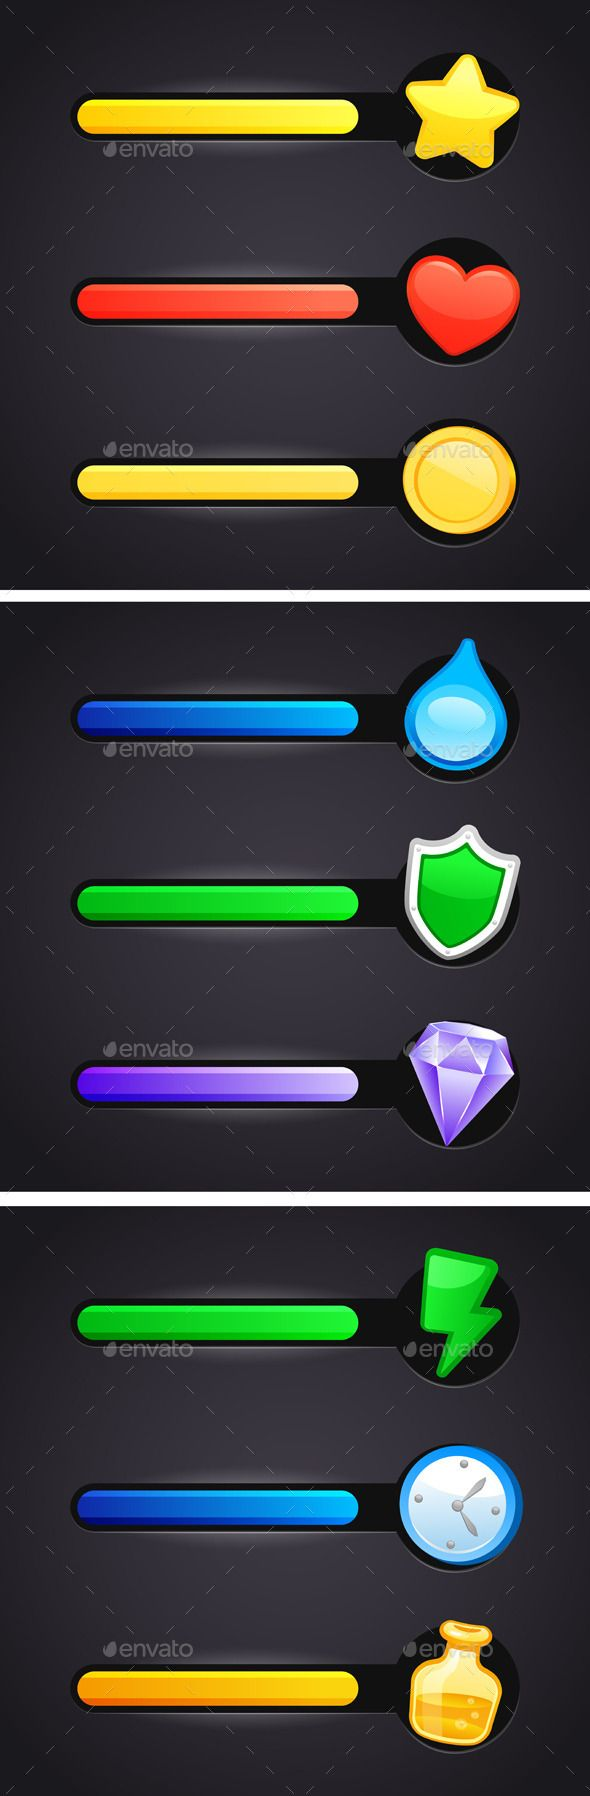 Game Icons And Resource Bar Set by Teneresa Game icons and resource bar set. Editable vector set. EPS 10. All the design elements can be recolored and resized. Layered PNG, P